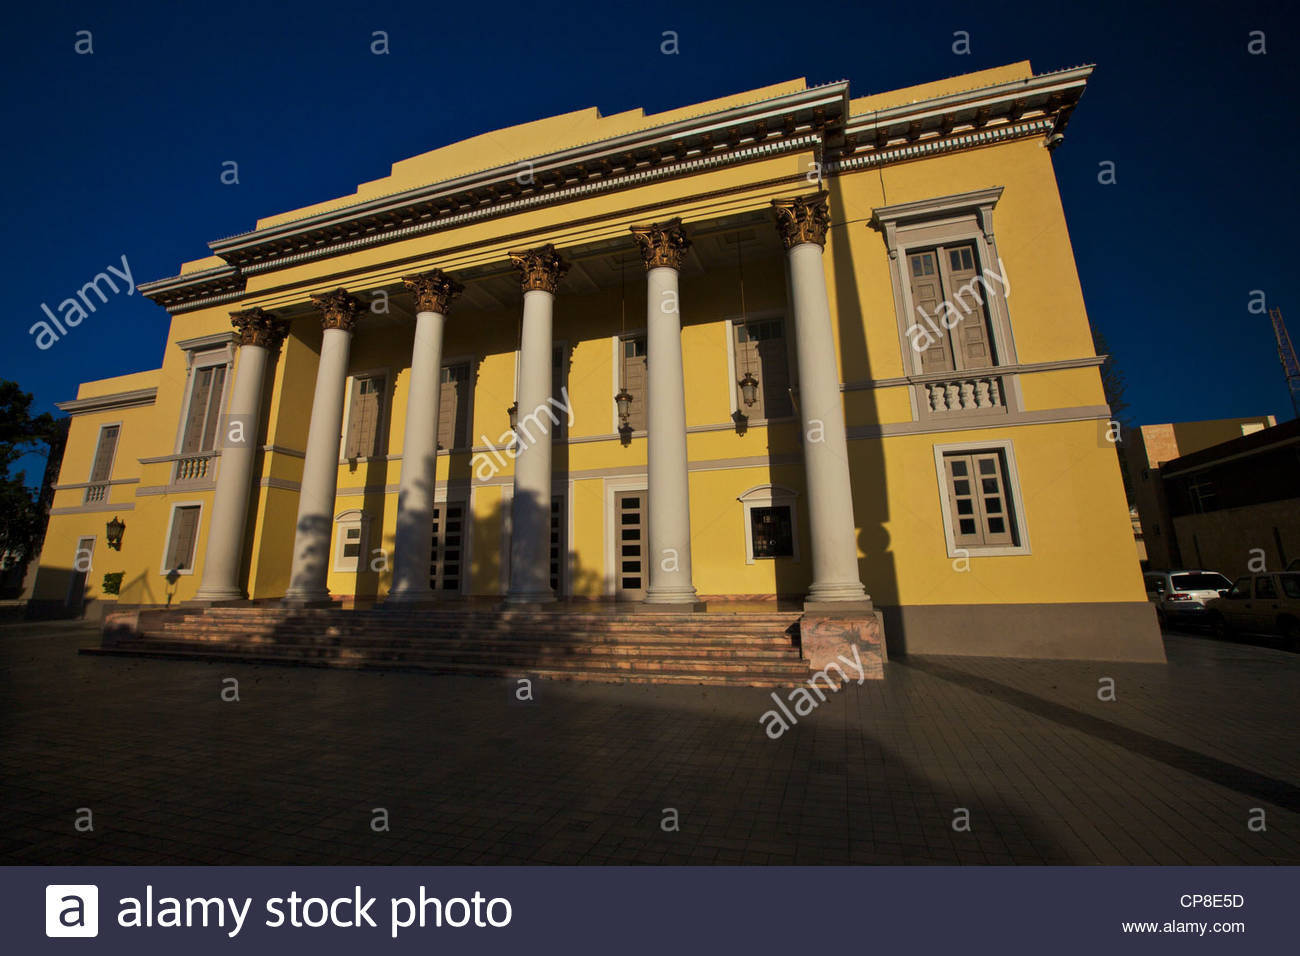 Teatro La Perla Ponce, Teatro la Perla restored greek revival theater in Ponce Puerto ...